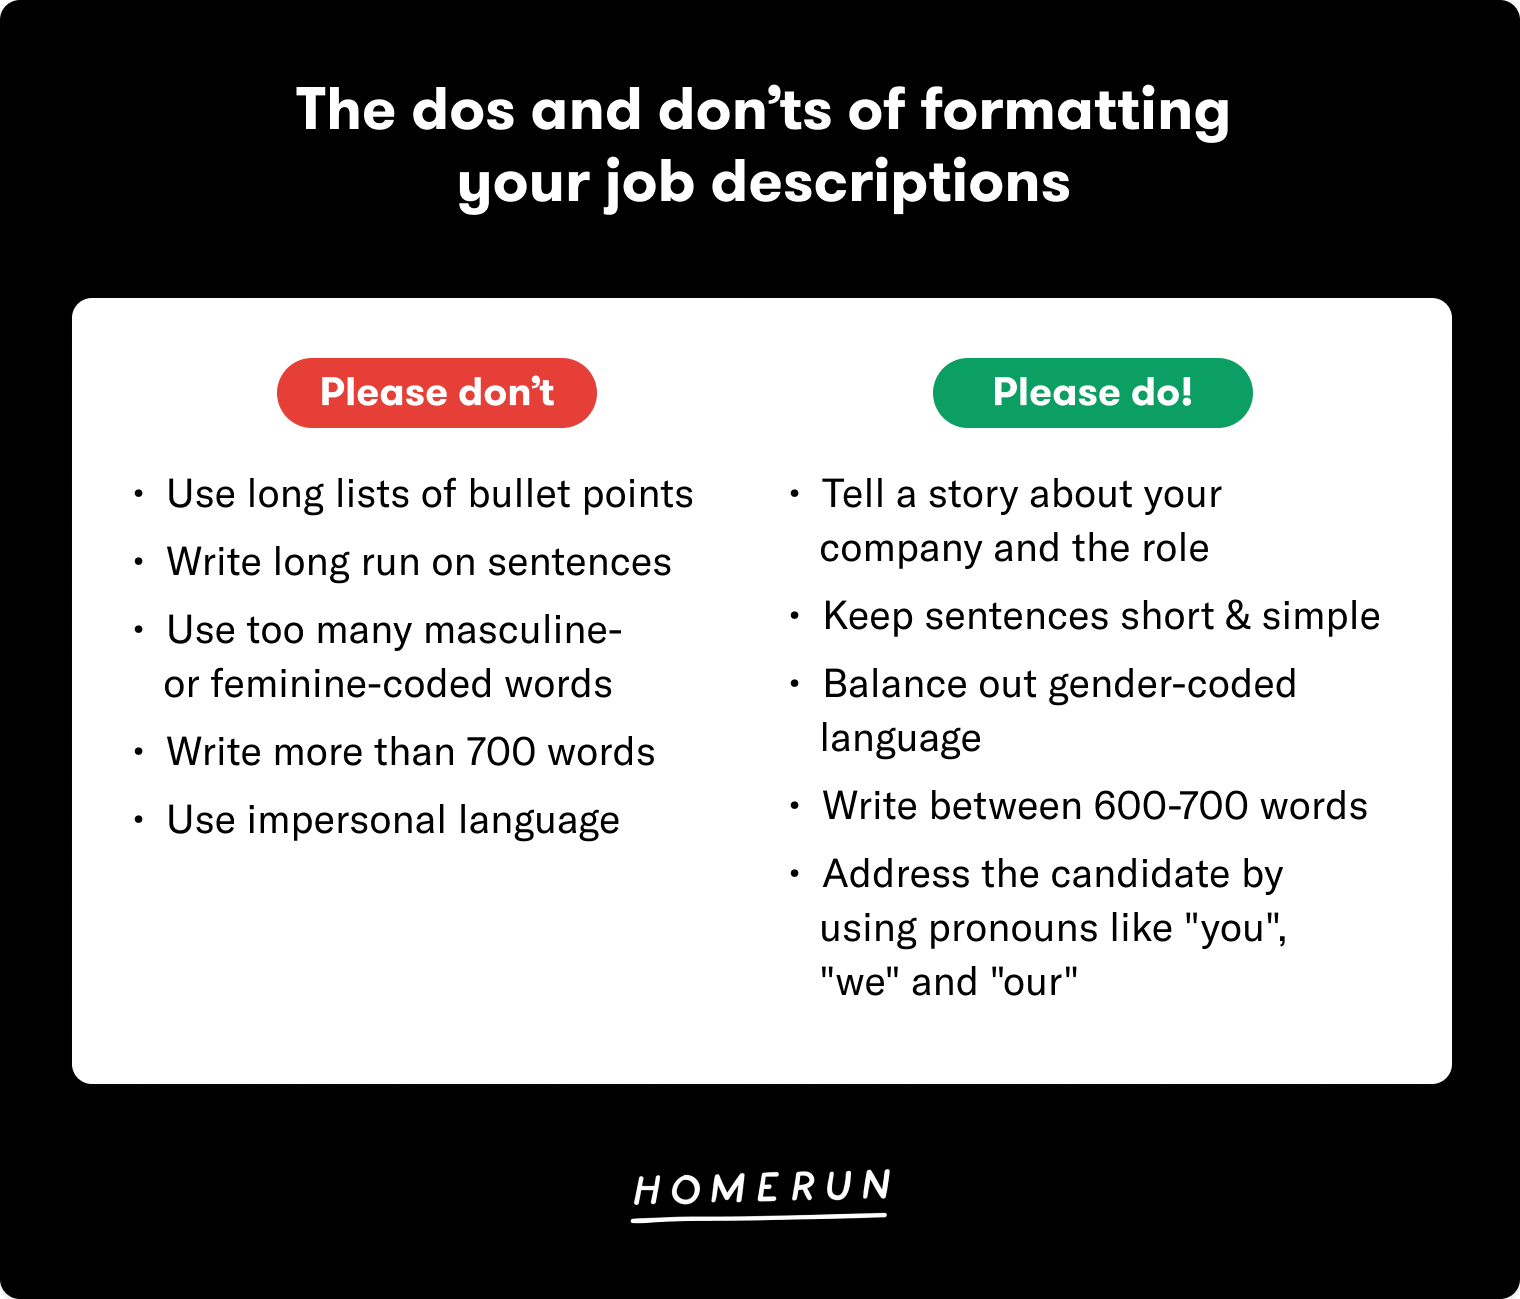 The dos and don'ts of formatting your job descriptions